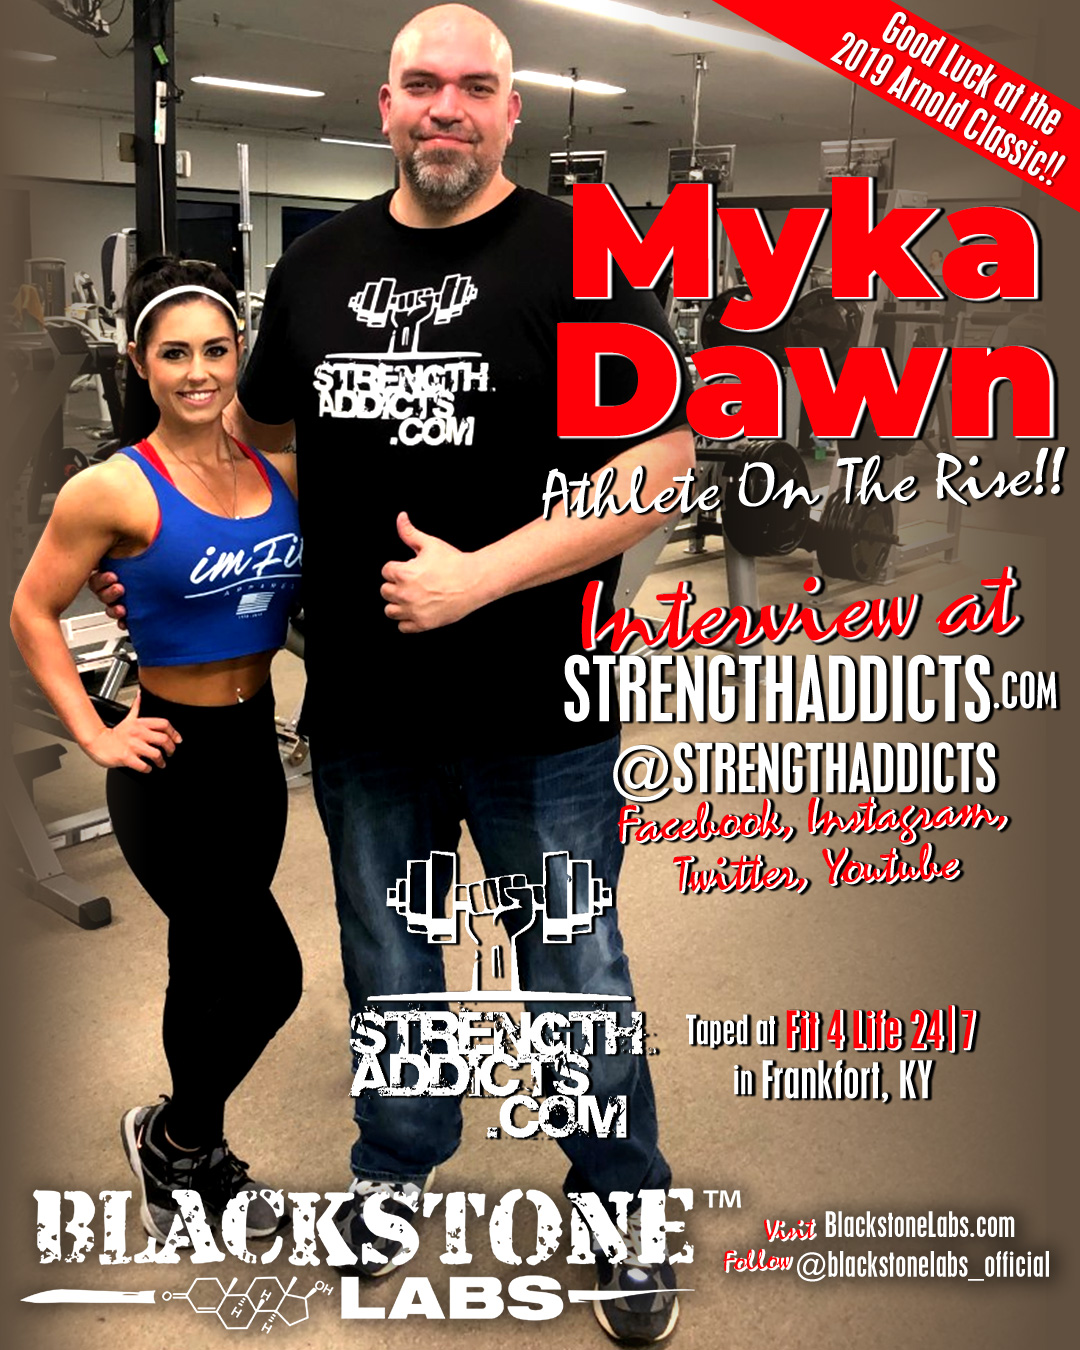 Myka Dawn of Blackstone Labs